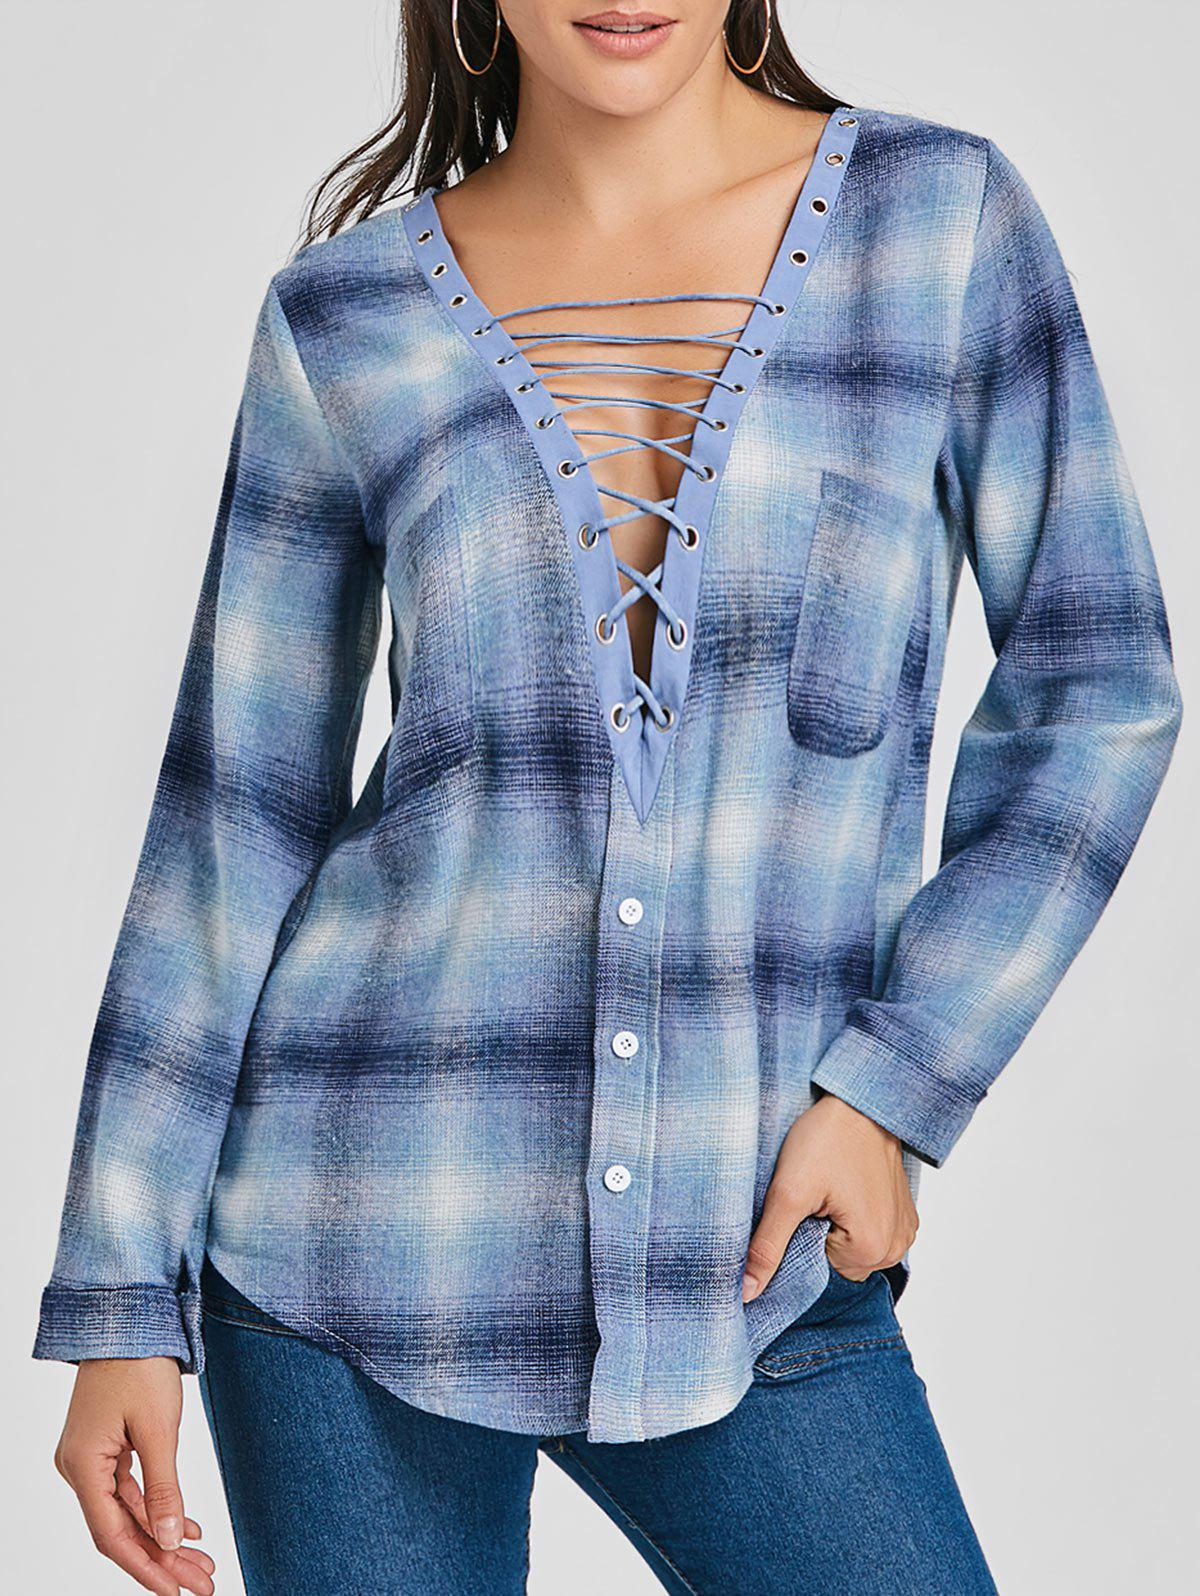 Lace Up Plunge Plaid Shirt - BLUE L